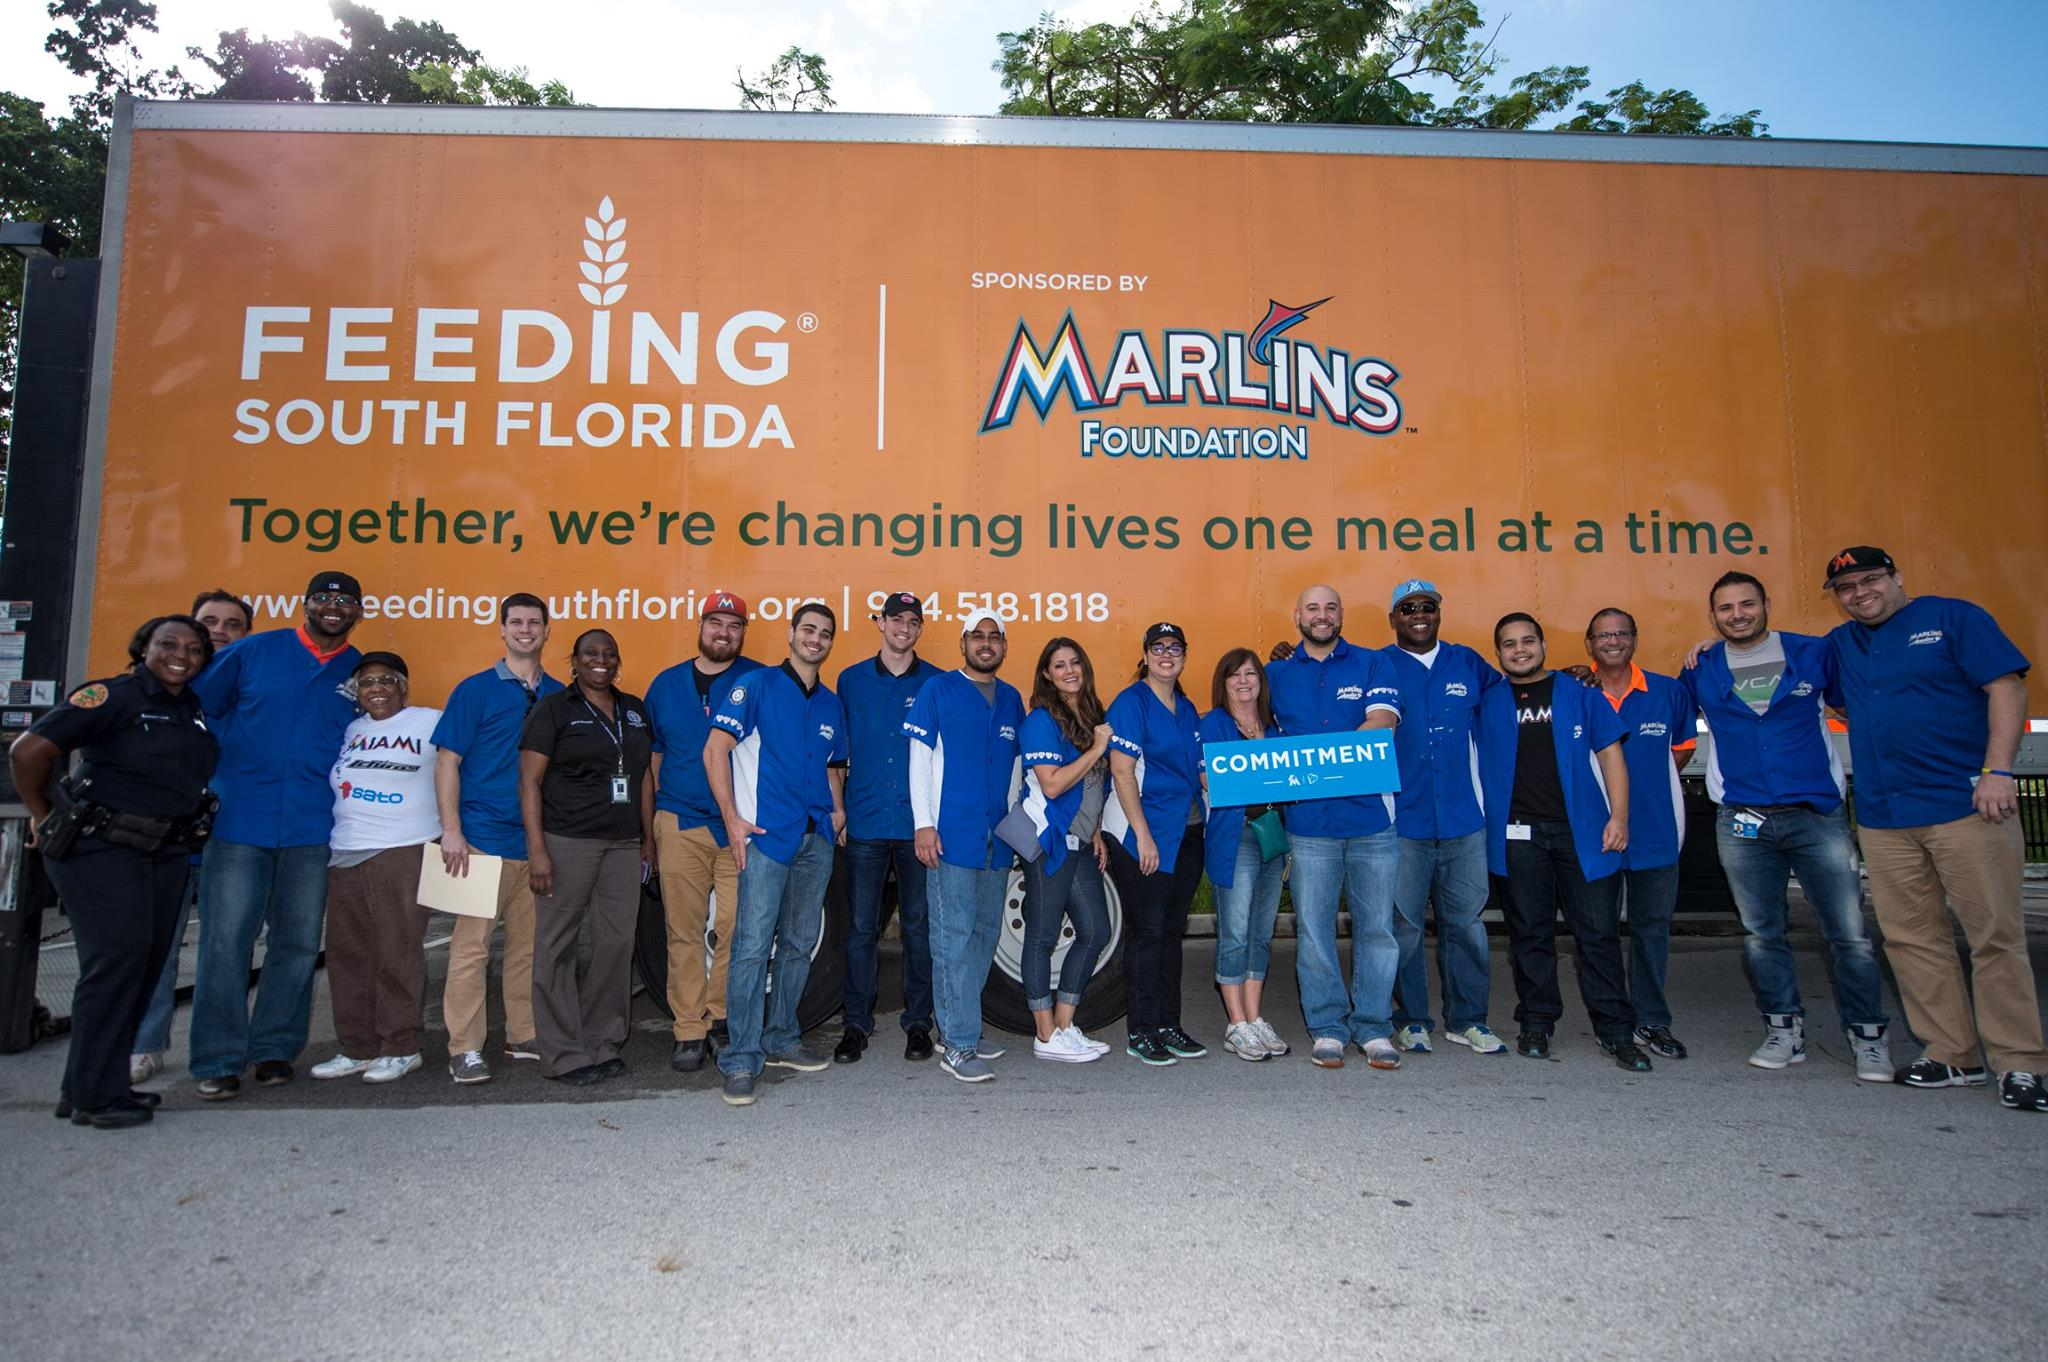 Marlins, Feeding South Florida hand out food for Give Miami Day